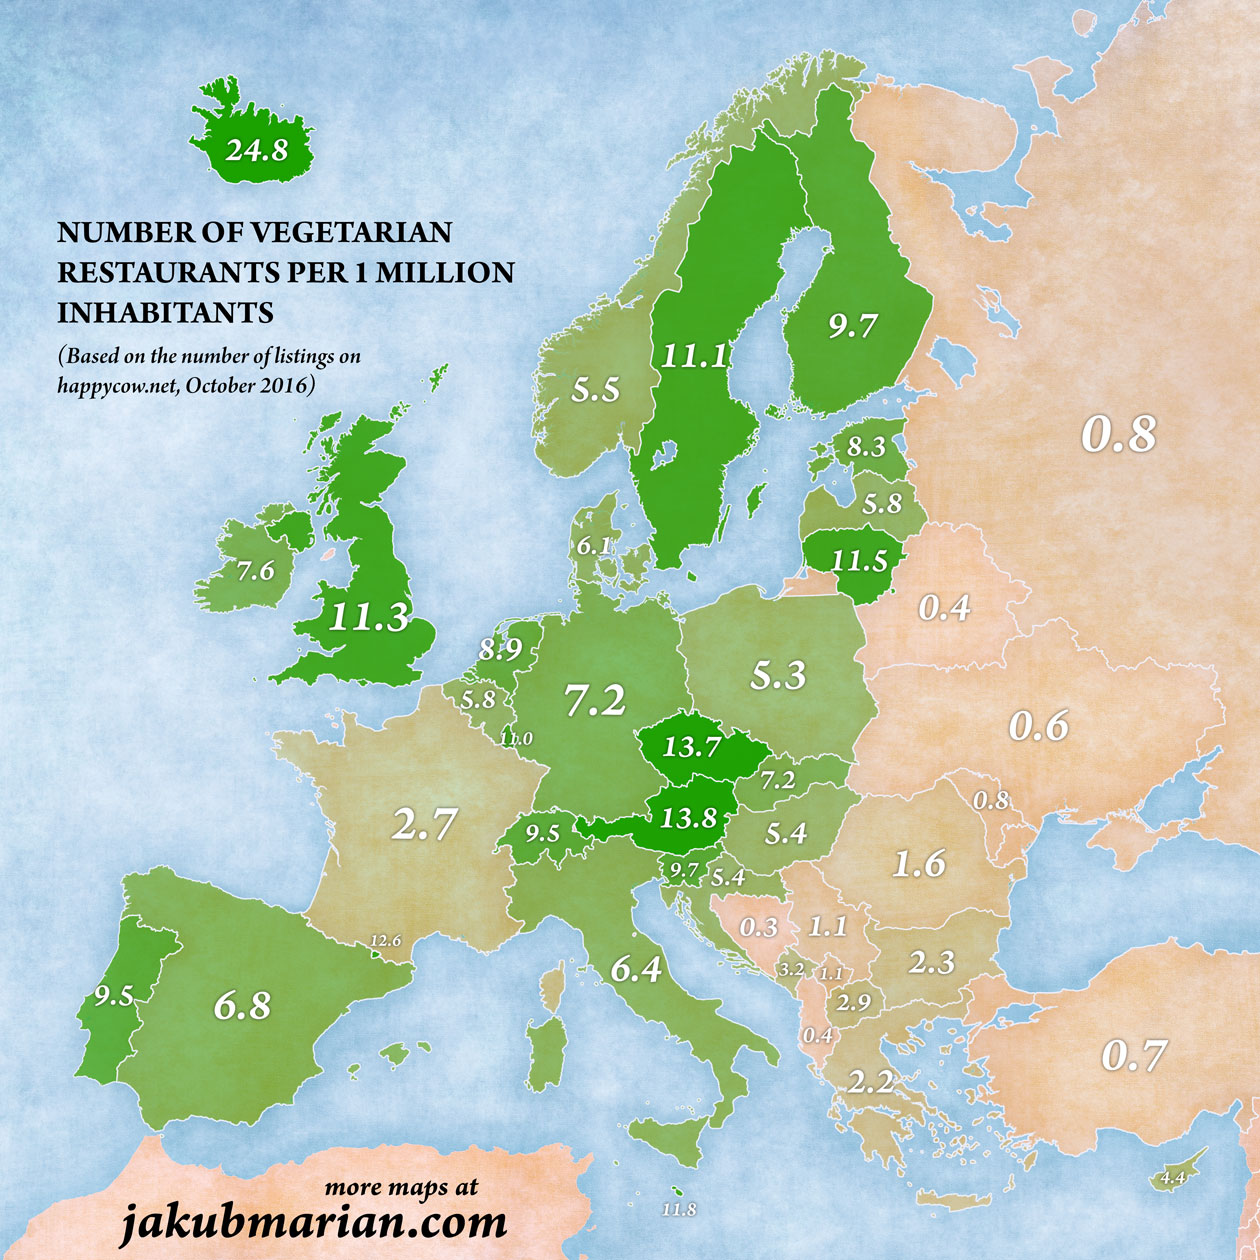 Czech Republic One of Europes Most VeggieFriendly Countries